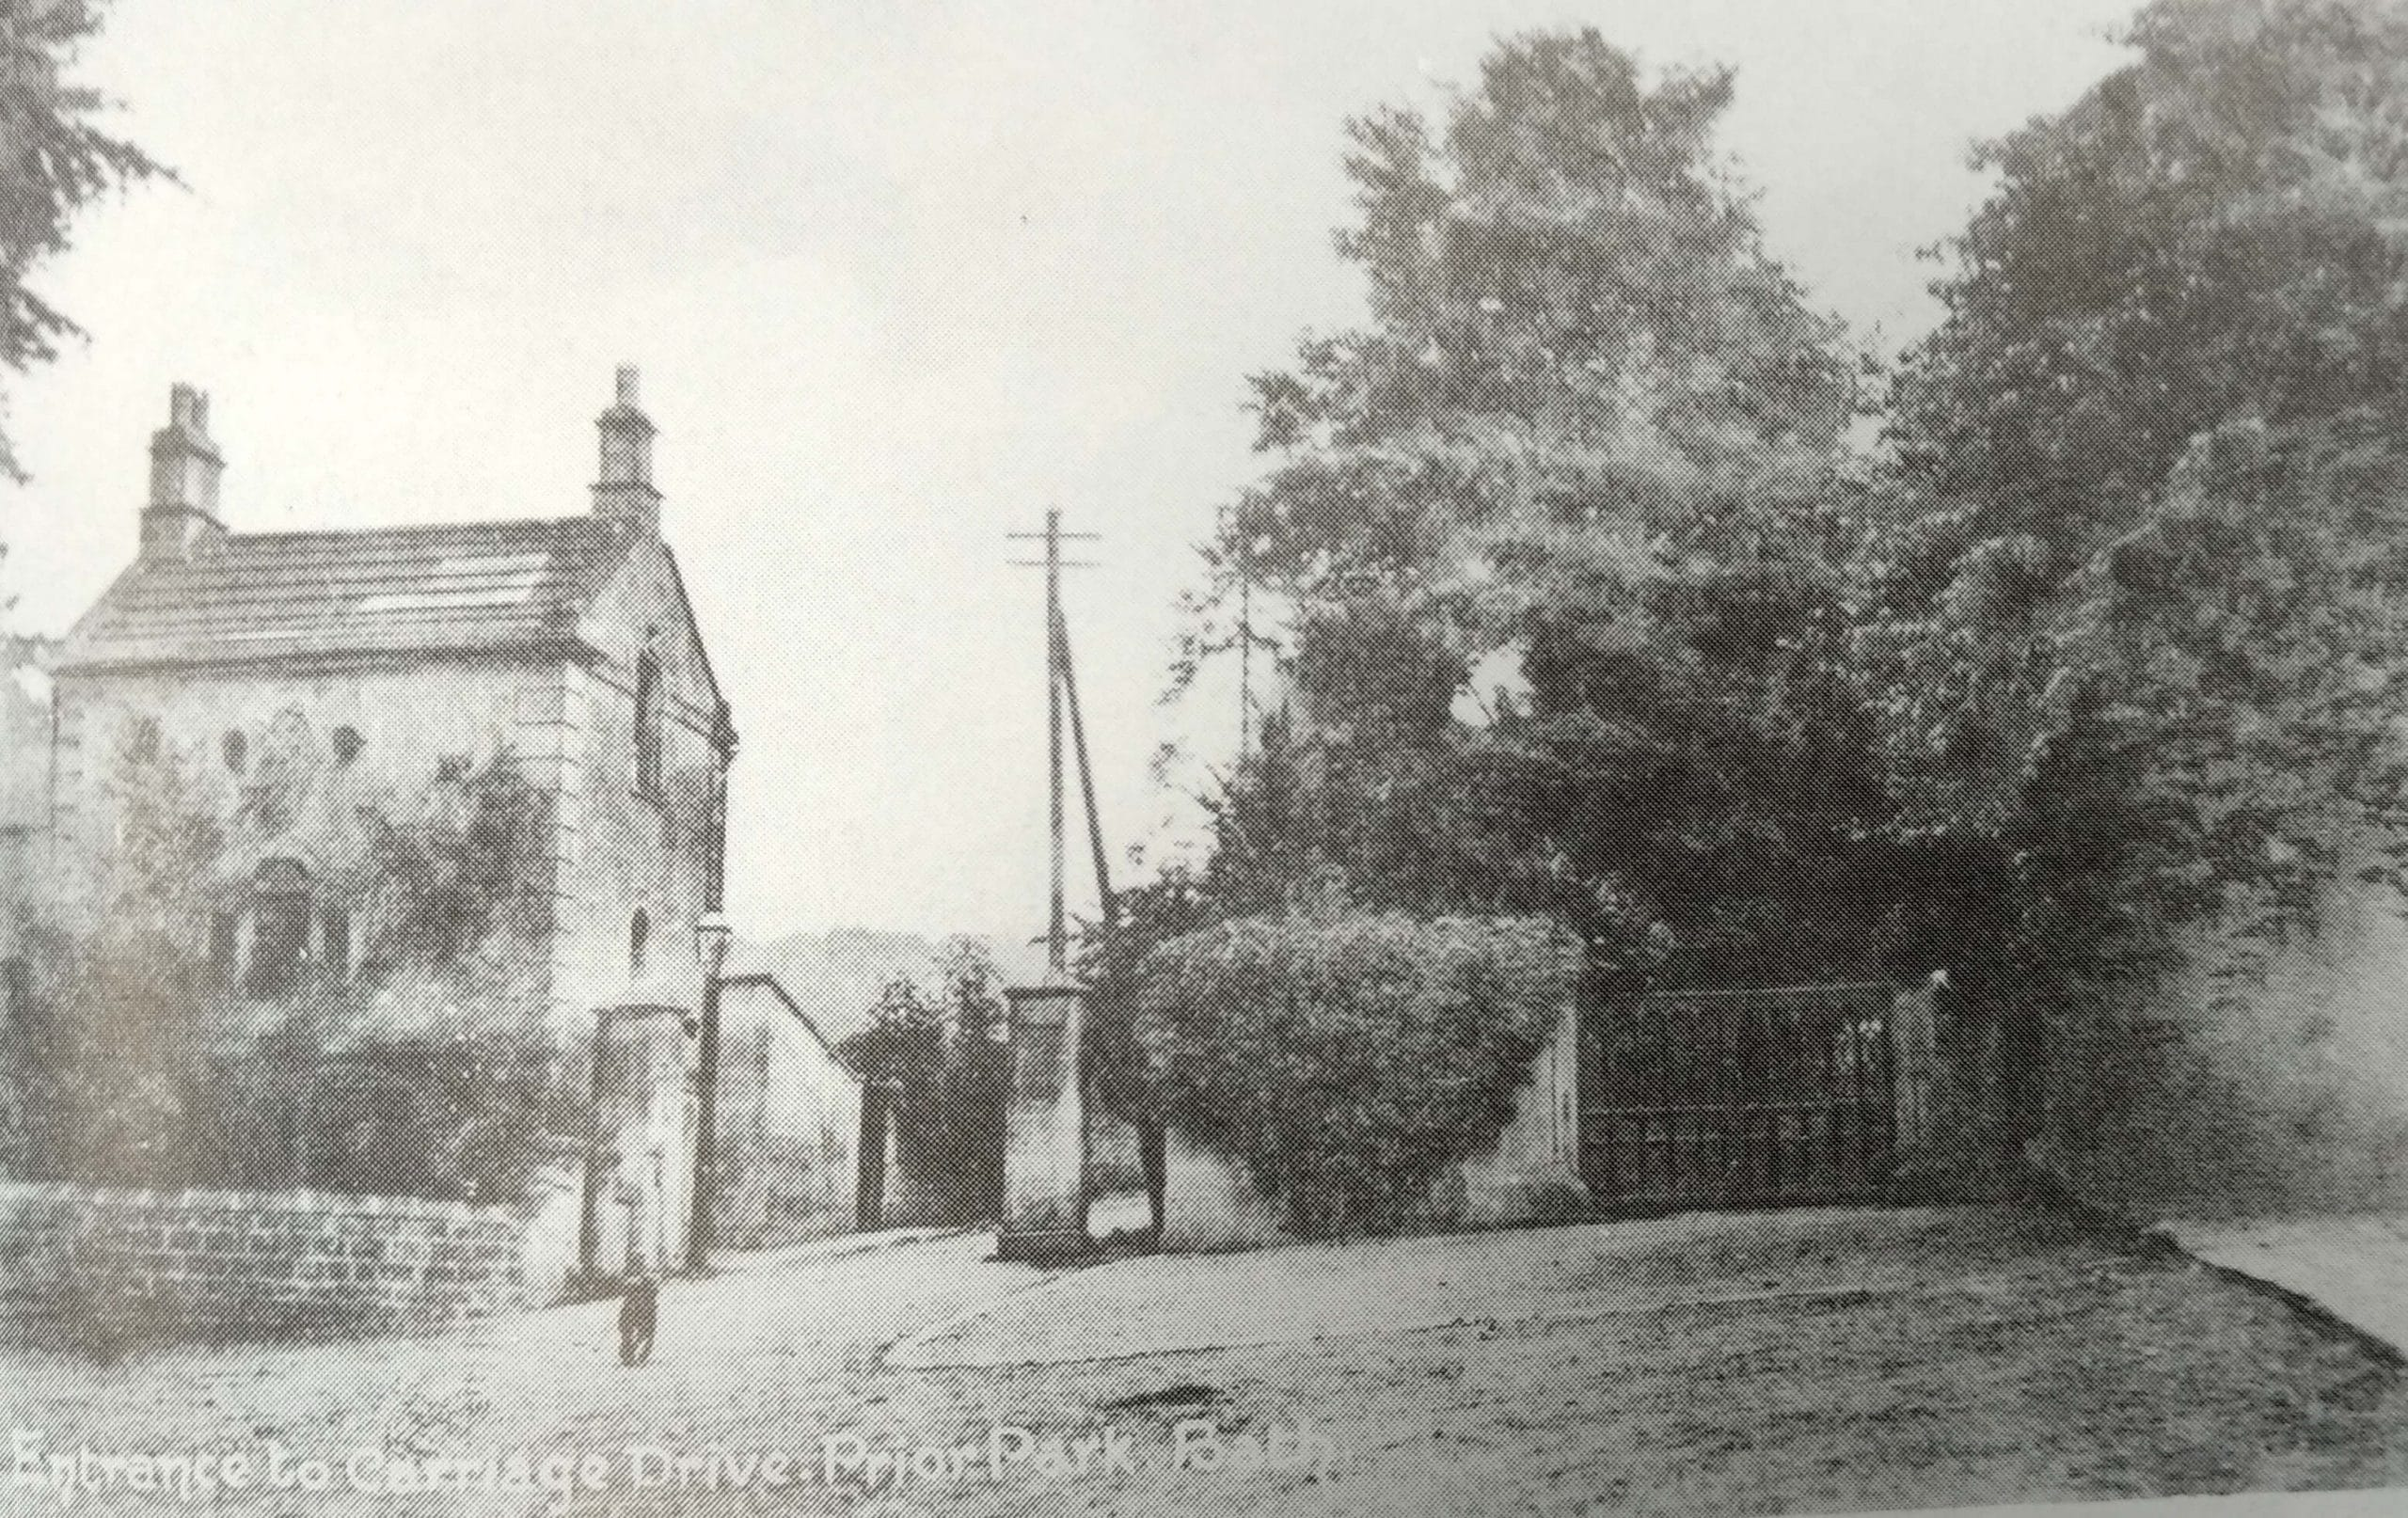 Entrance to carriage drive at Prior Park about 1906